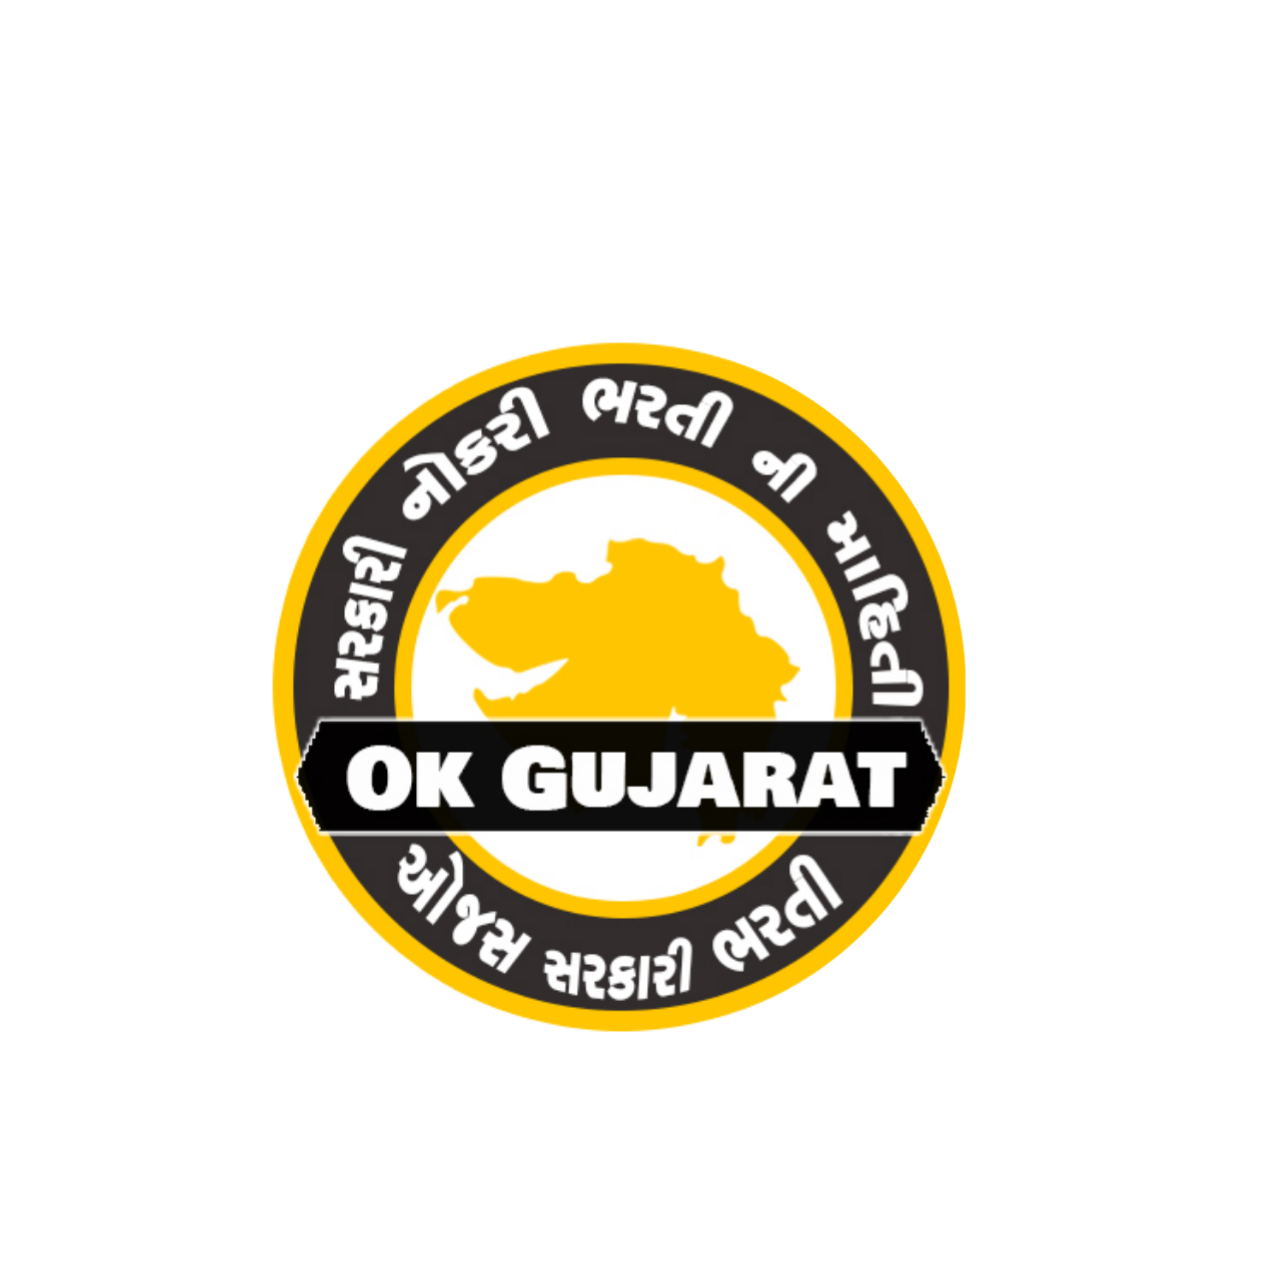 OK Gujarat - Official Site Ojas Maru Gujarat